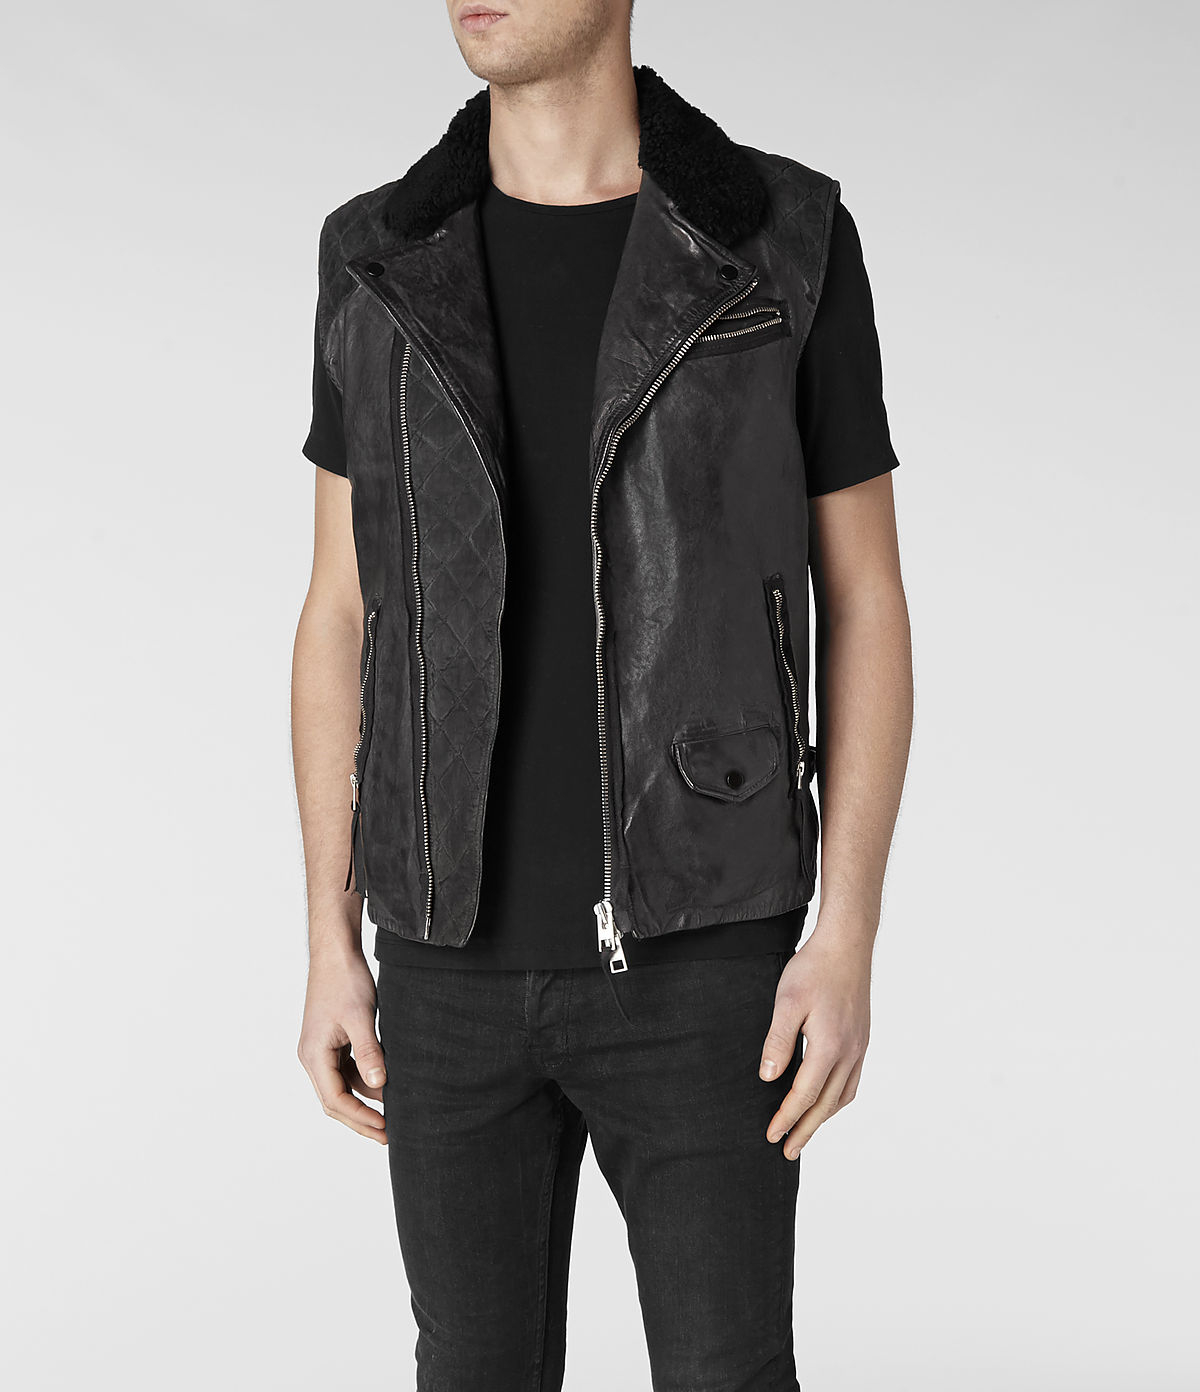 needloanbadcredit.cf provides mens sleeveless denim jacket items from China top selected Men's Vests, Men's Outerwear & Coats, Men's Clothing, Apparel suppliers at wholesale prices with worldwide delivery. You can find denim jacket, Men mens sleeveless denim jacket free shipping, mens blue denim jacket sleeveless and view 24 mens sleeveless denim.